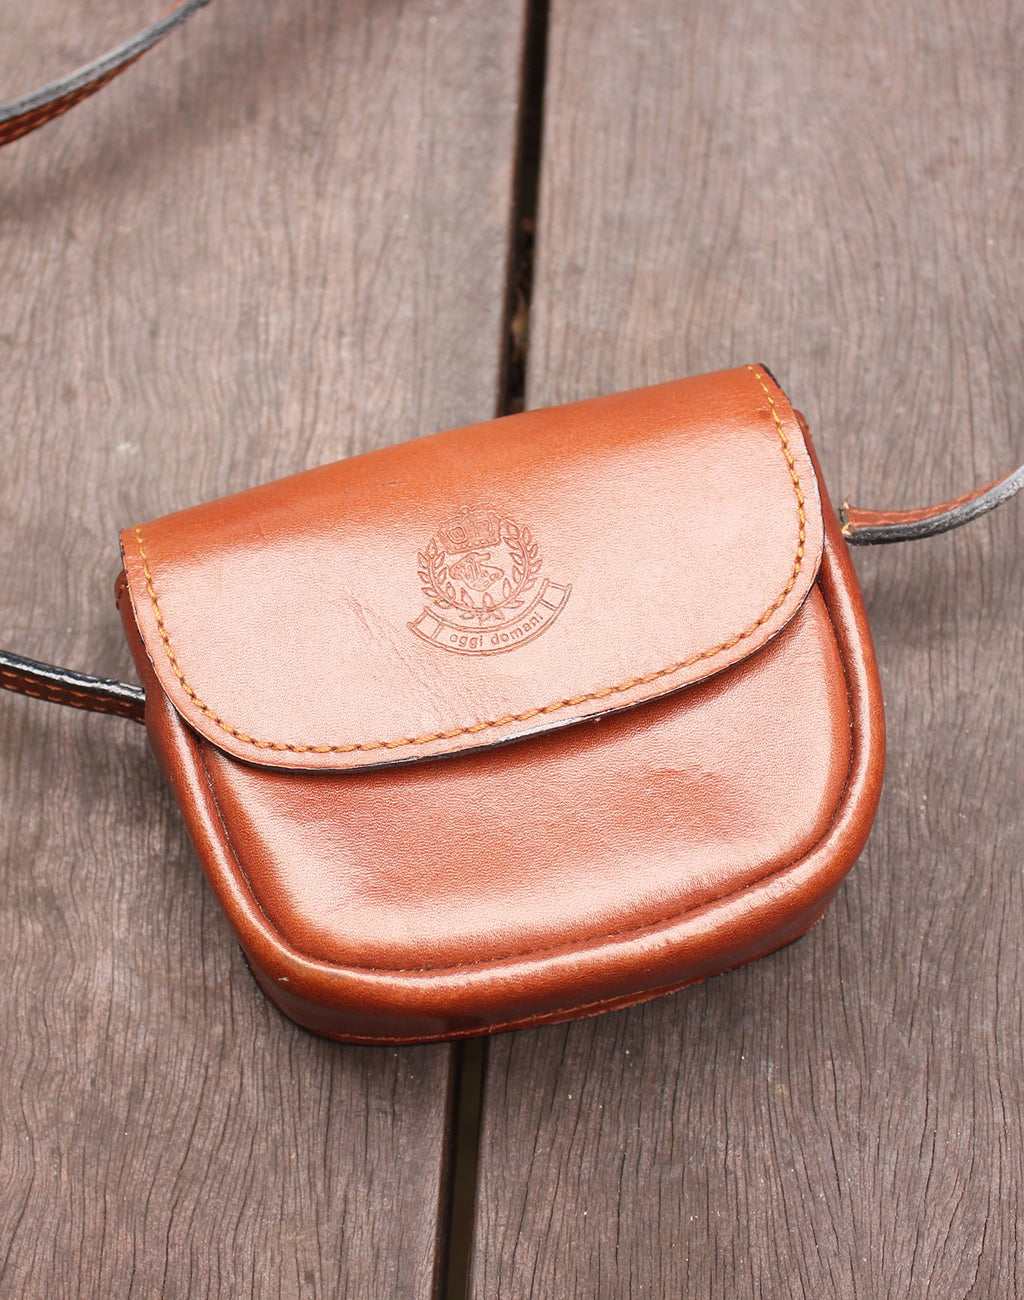 Small Tan Leather Pouch Bag